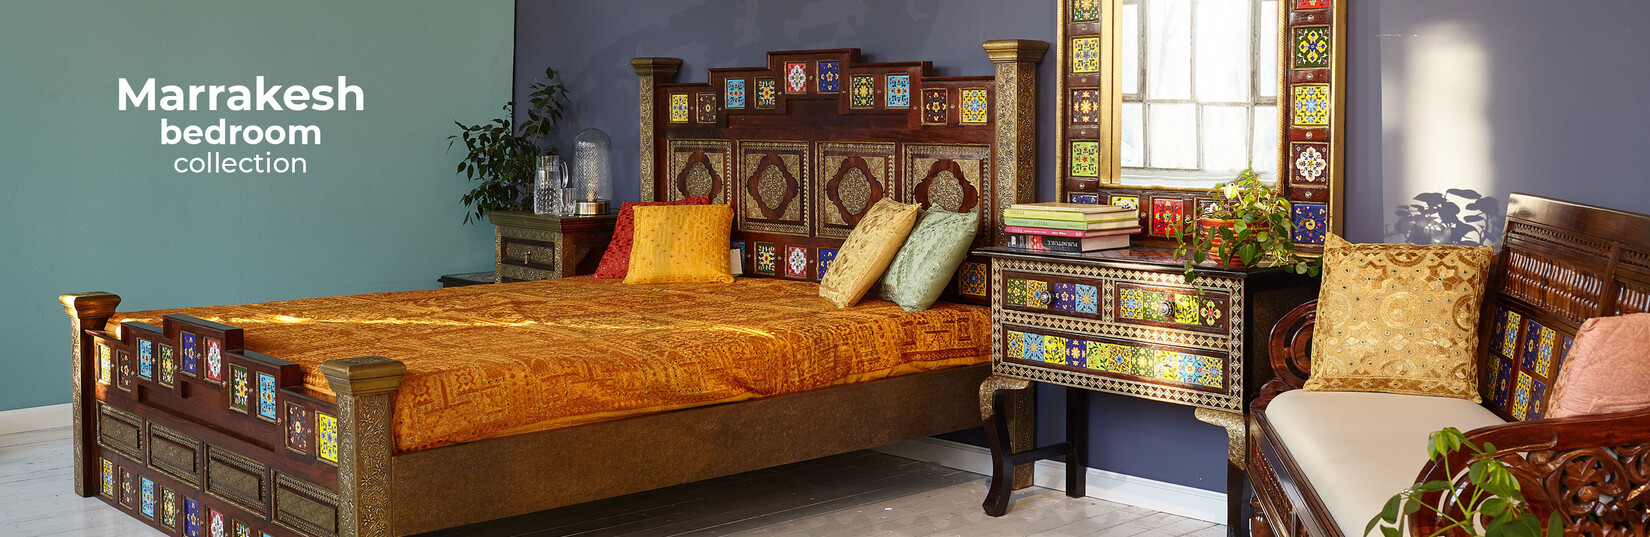 Marrakesh bedroom collection